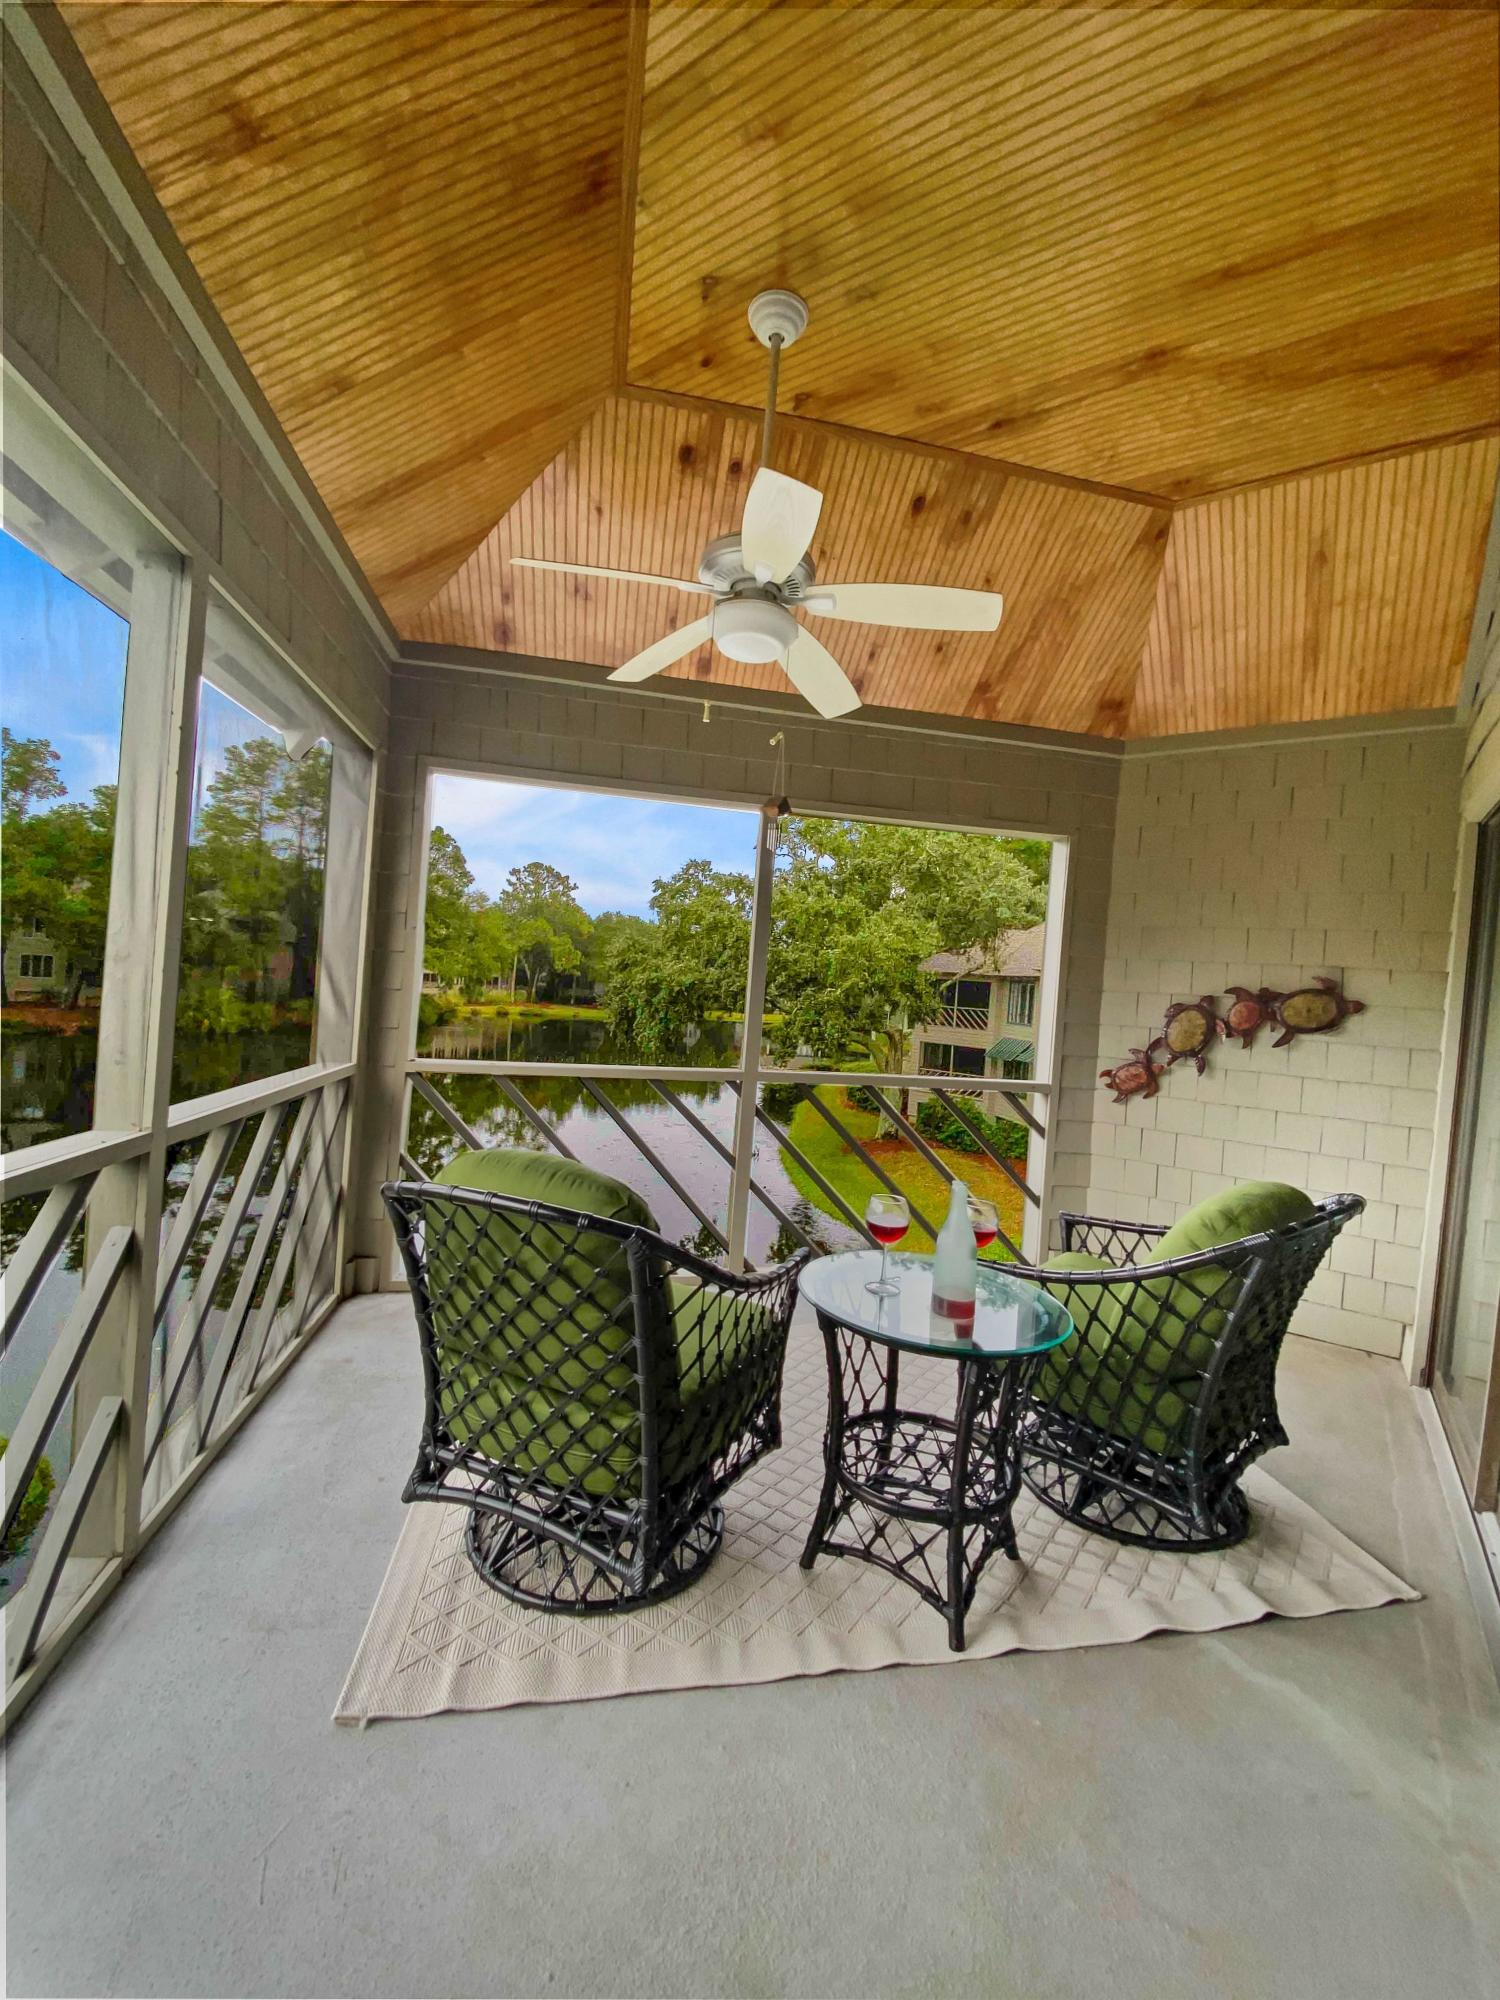 Kiawah Island Condos For Sale - 4676 Tennis Club Villas, Kiawah Island, SC - 14